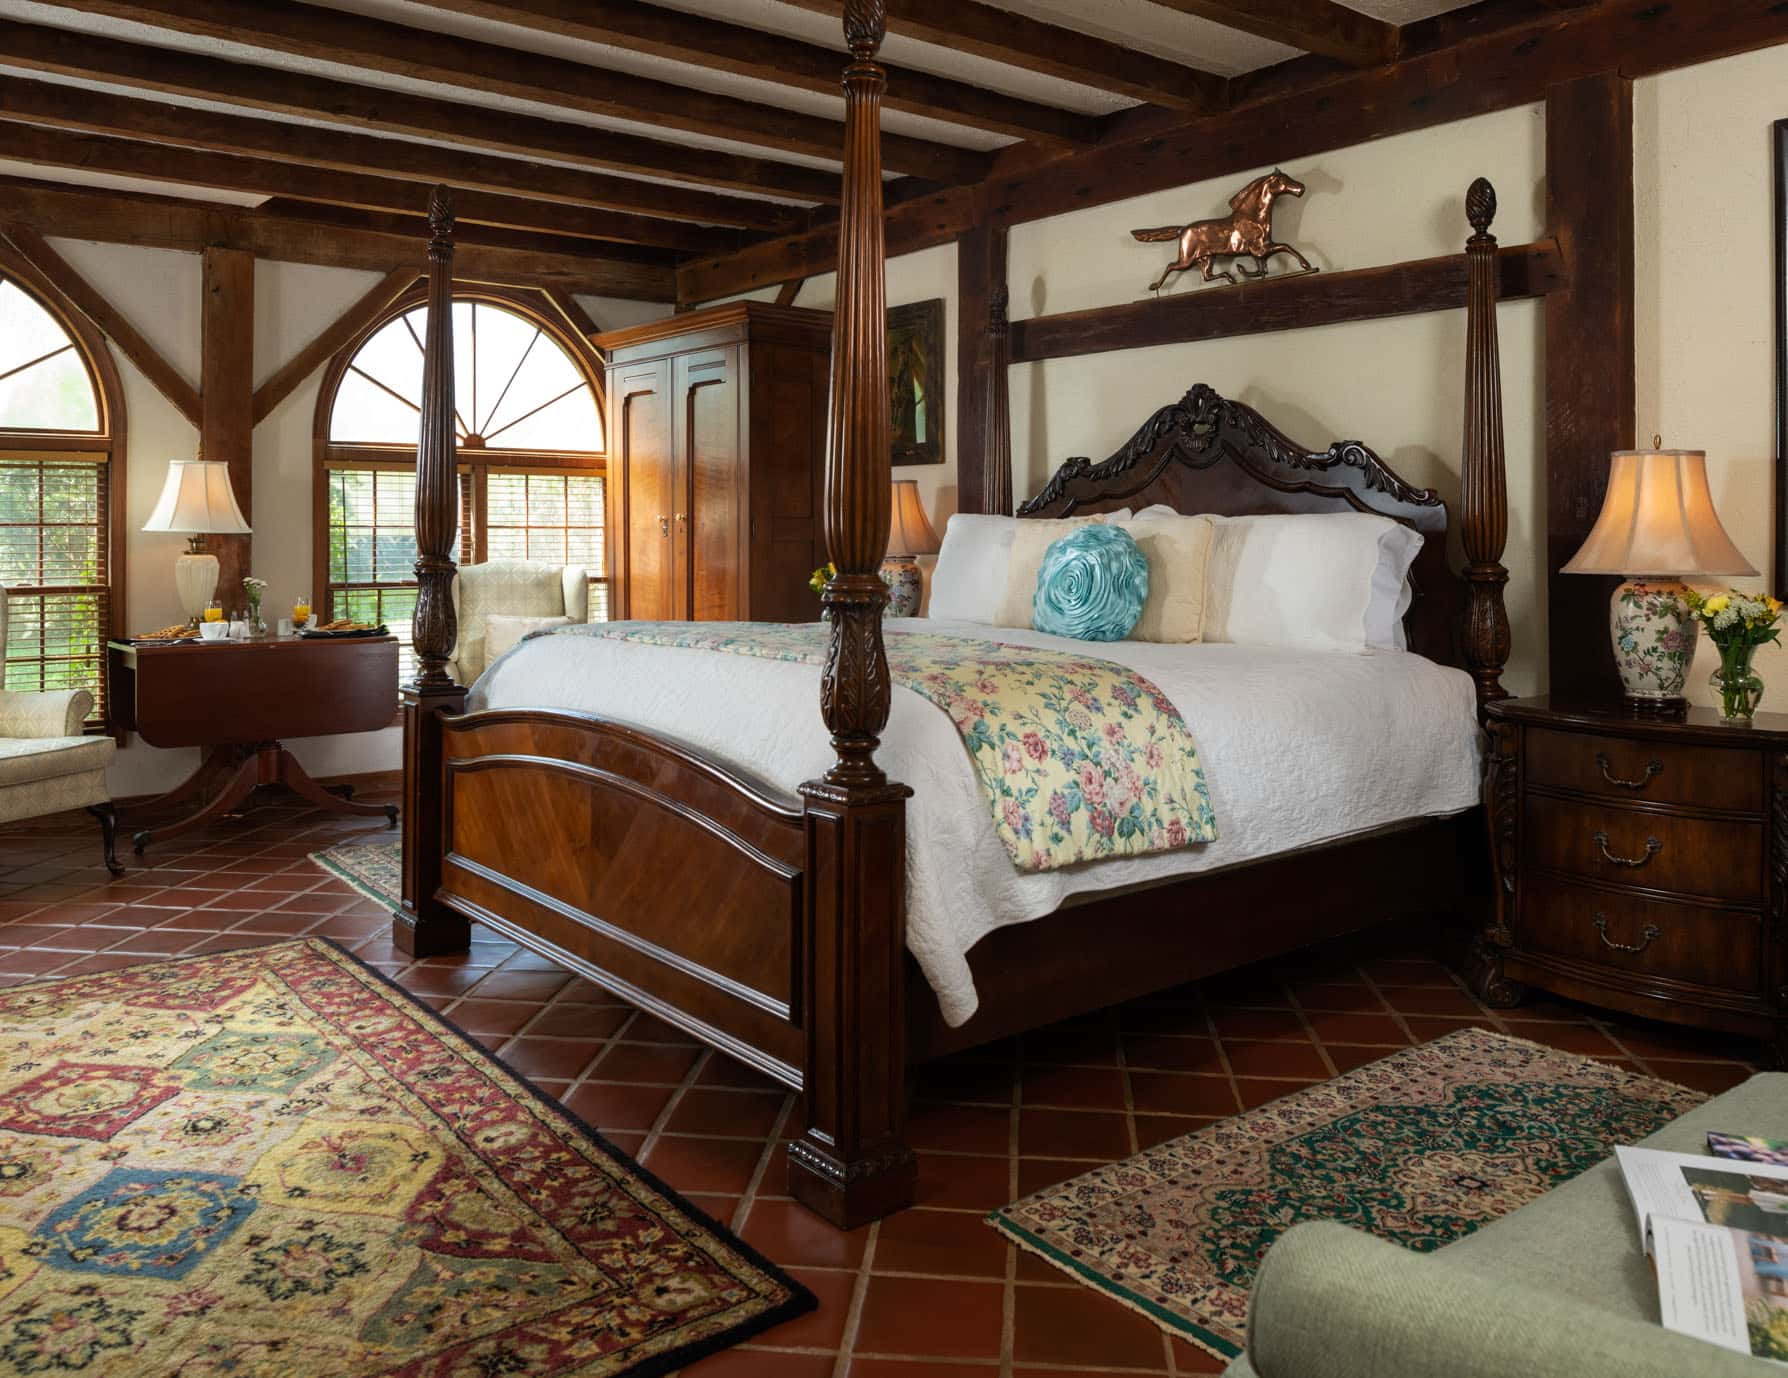 Four poster king bed in a large spacious room with ample natural light